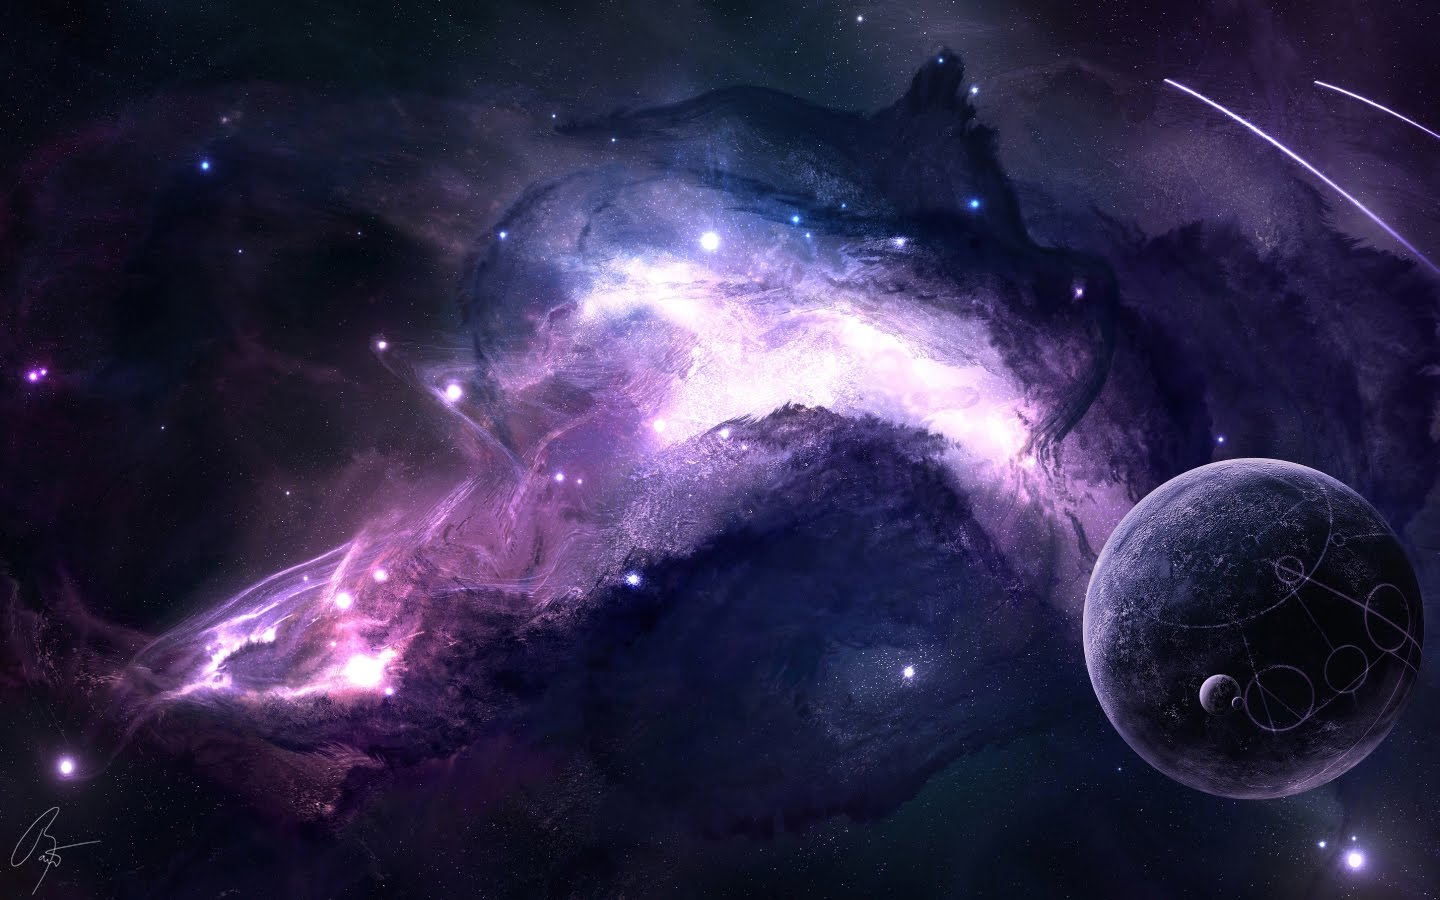 Hd space wallpapers 1080p